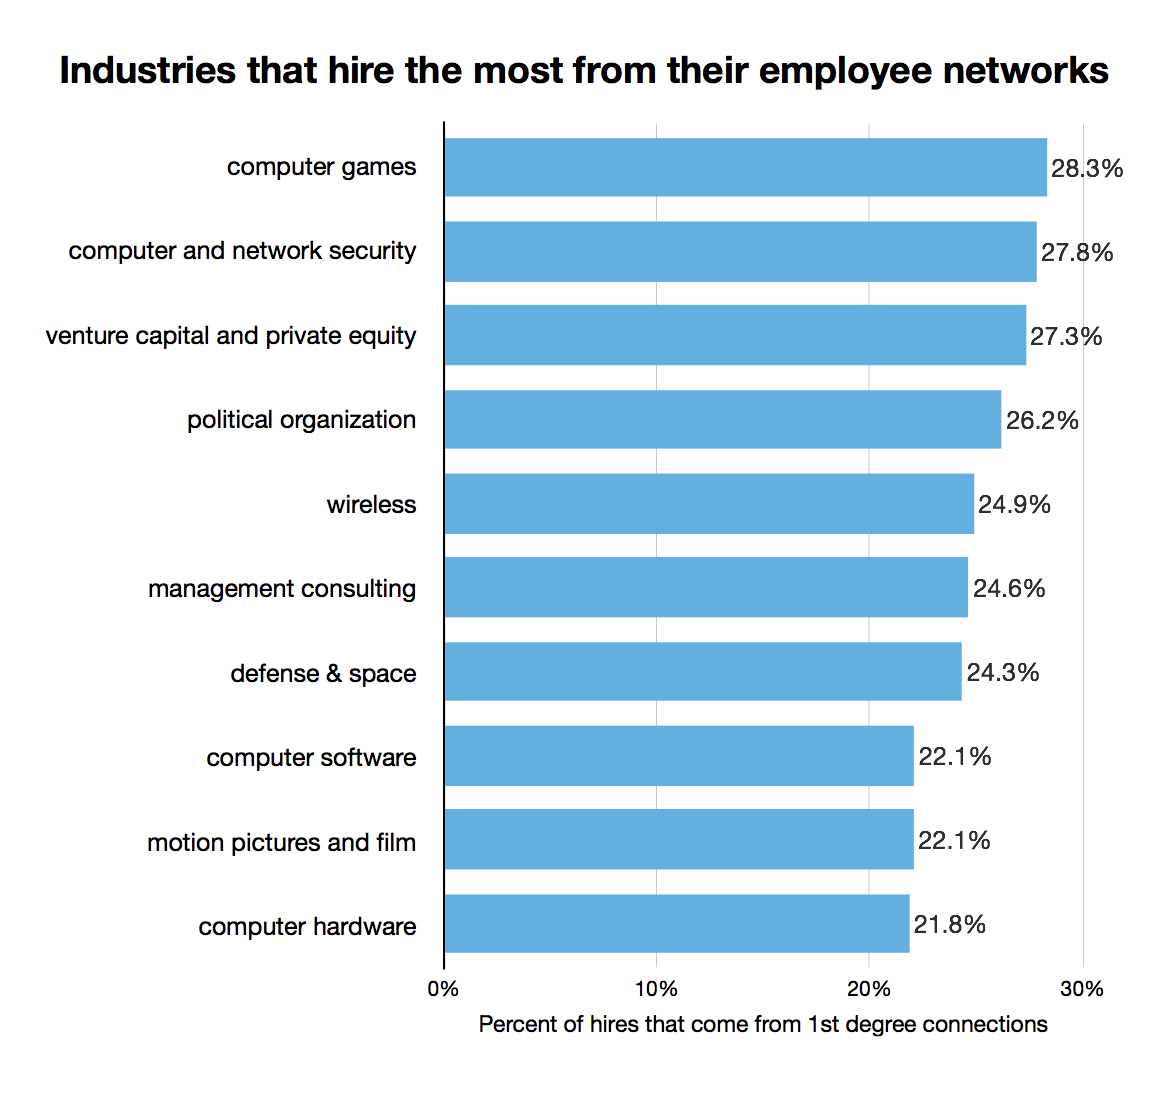 industries that hire most from first degree